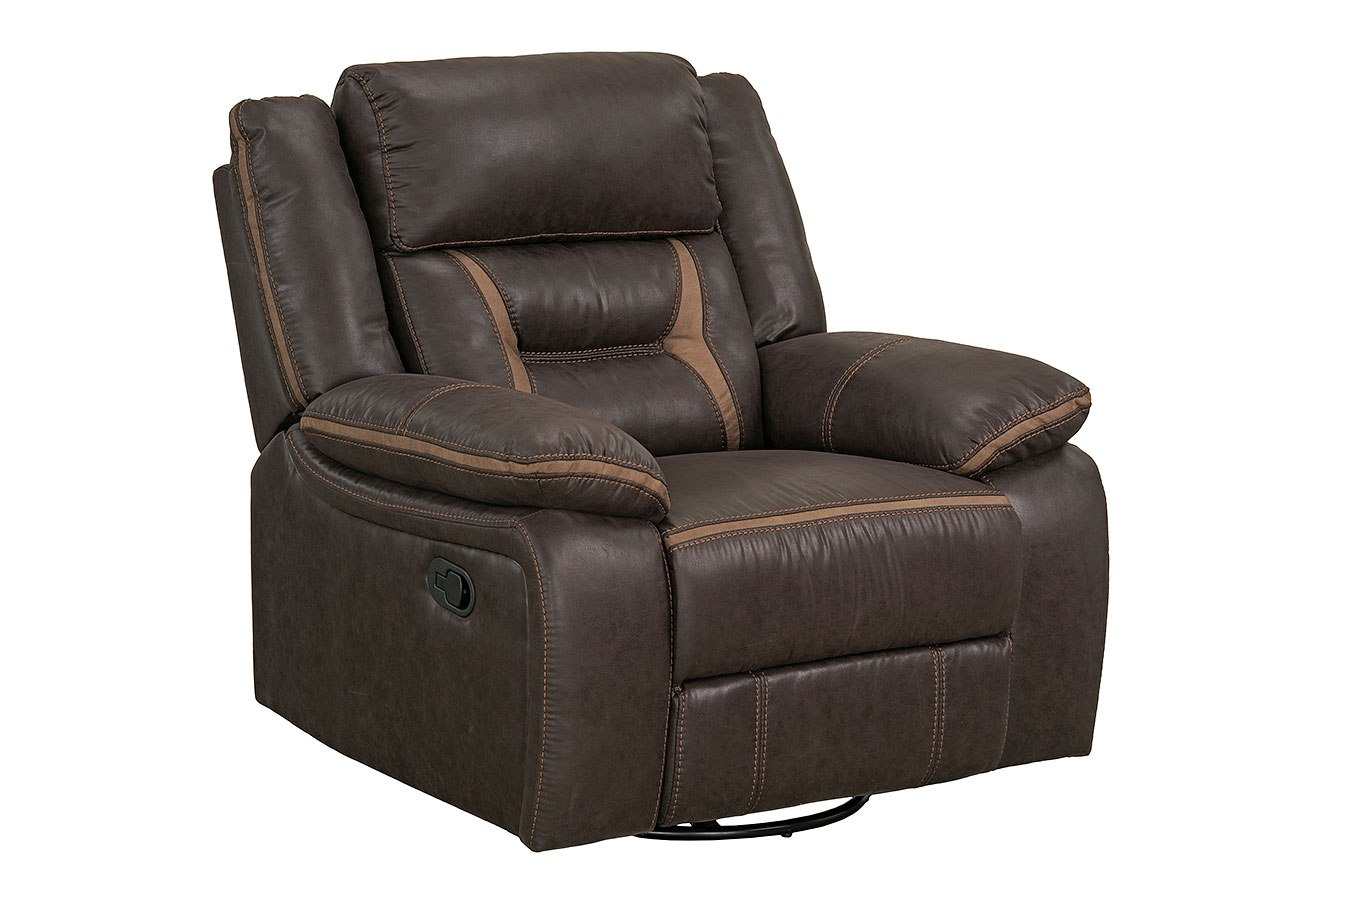 Acropolis Reclining Living Room Set Chocolate By